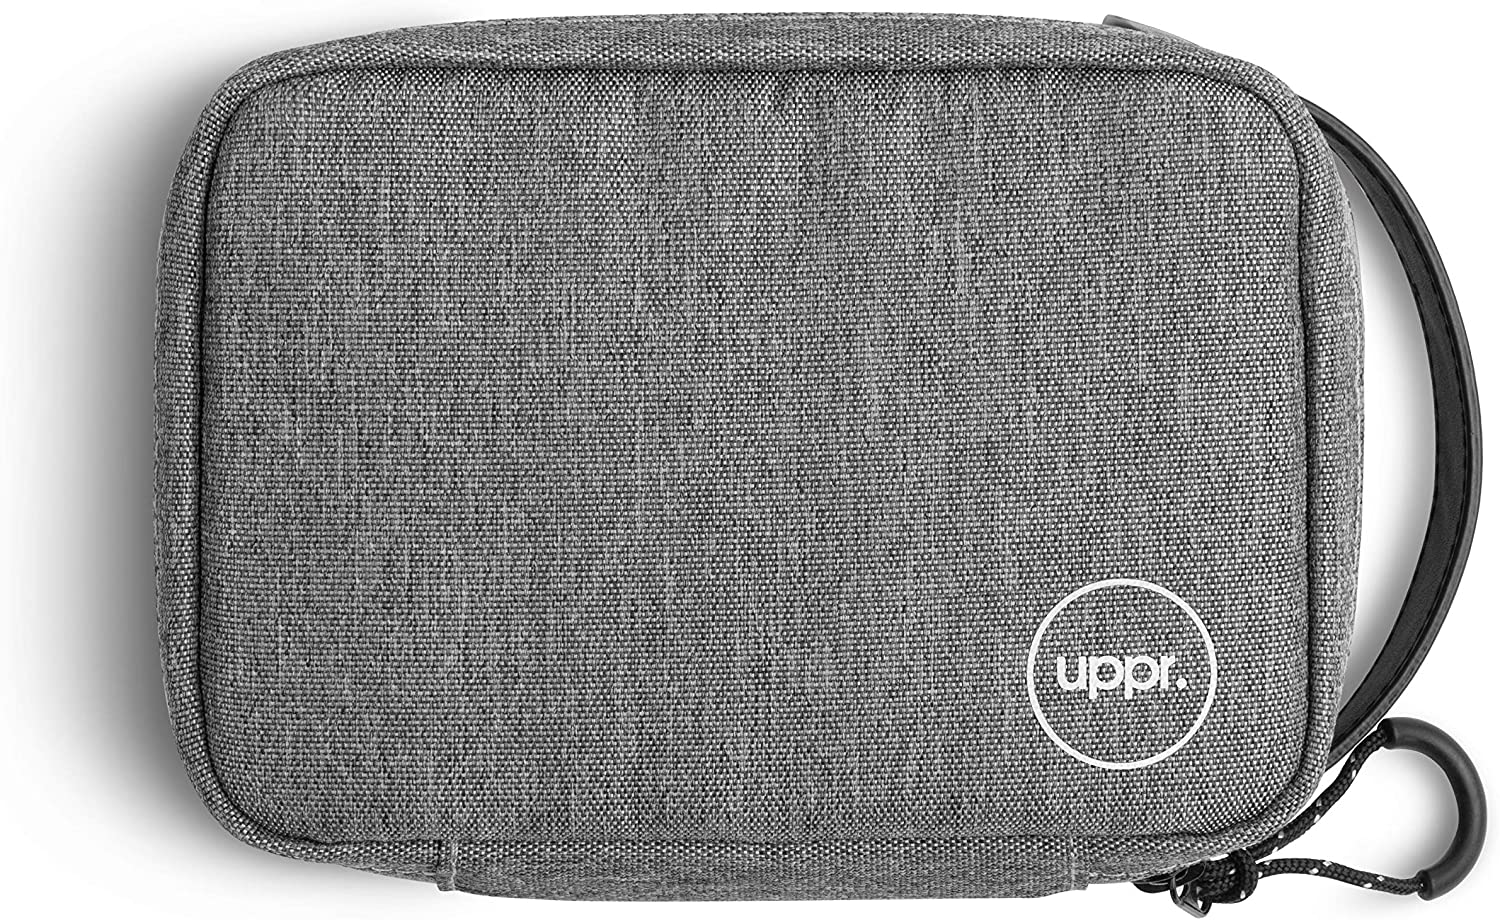 UPPERCASE Organizer 7.5 Portable Electronic Accessories Travel Pouch with Leather Handle for Laptop MacBook Accessories, Chargers, Tech Gears, Gadgets, Cables, Cords, GoPro, Power Bank (7.5)